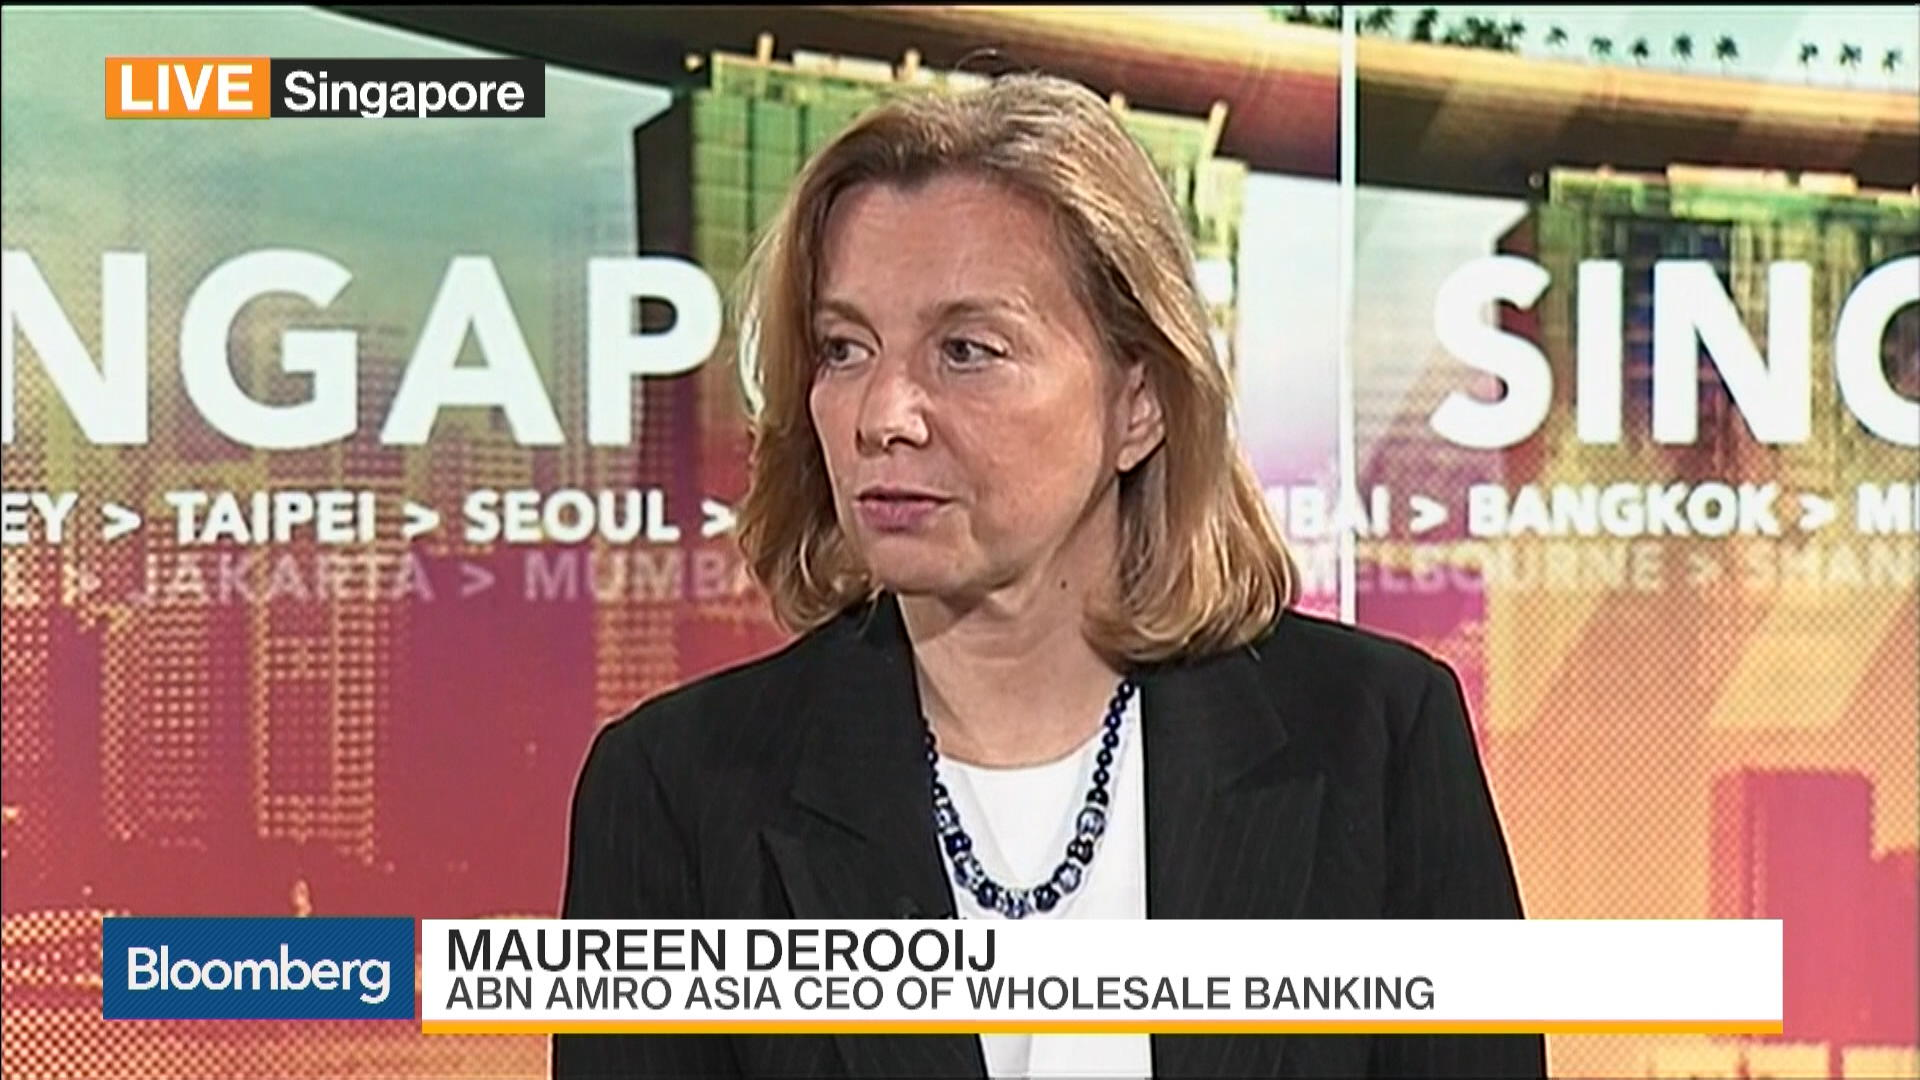 ABN Amro's Derooij Says Asian Focus Is on Corporate Bank